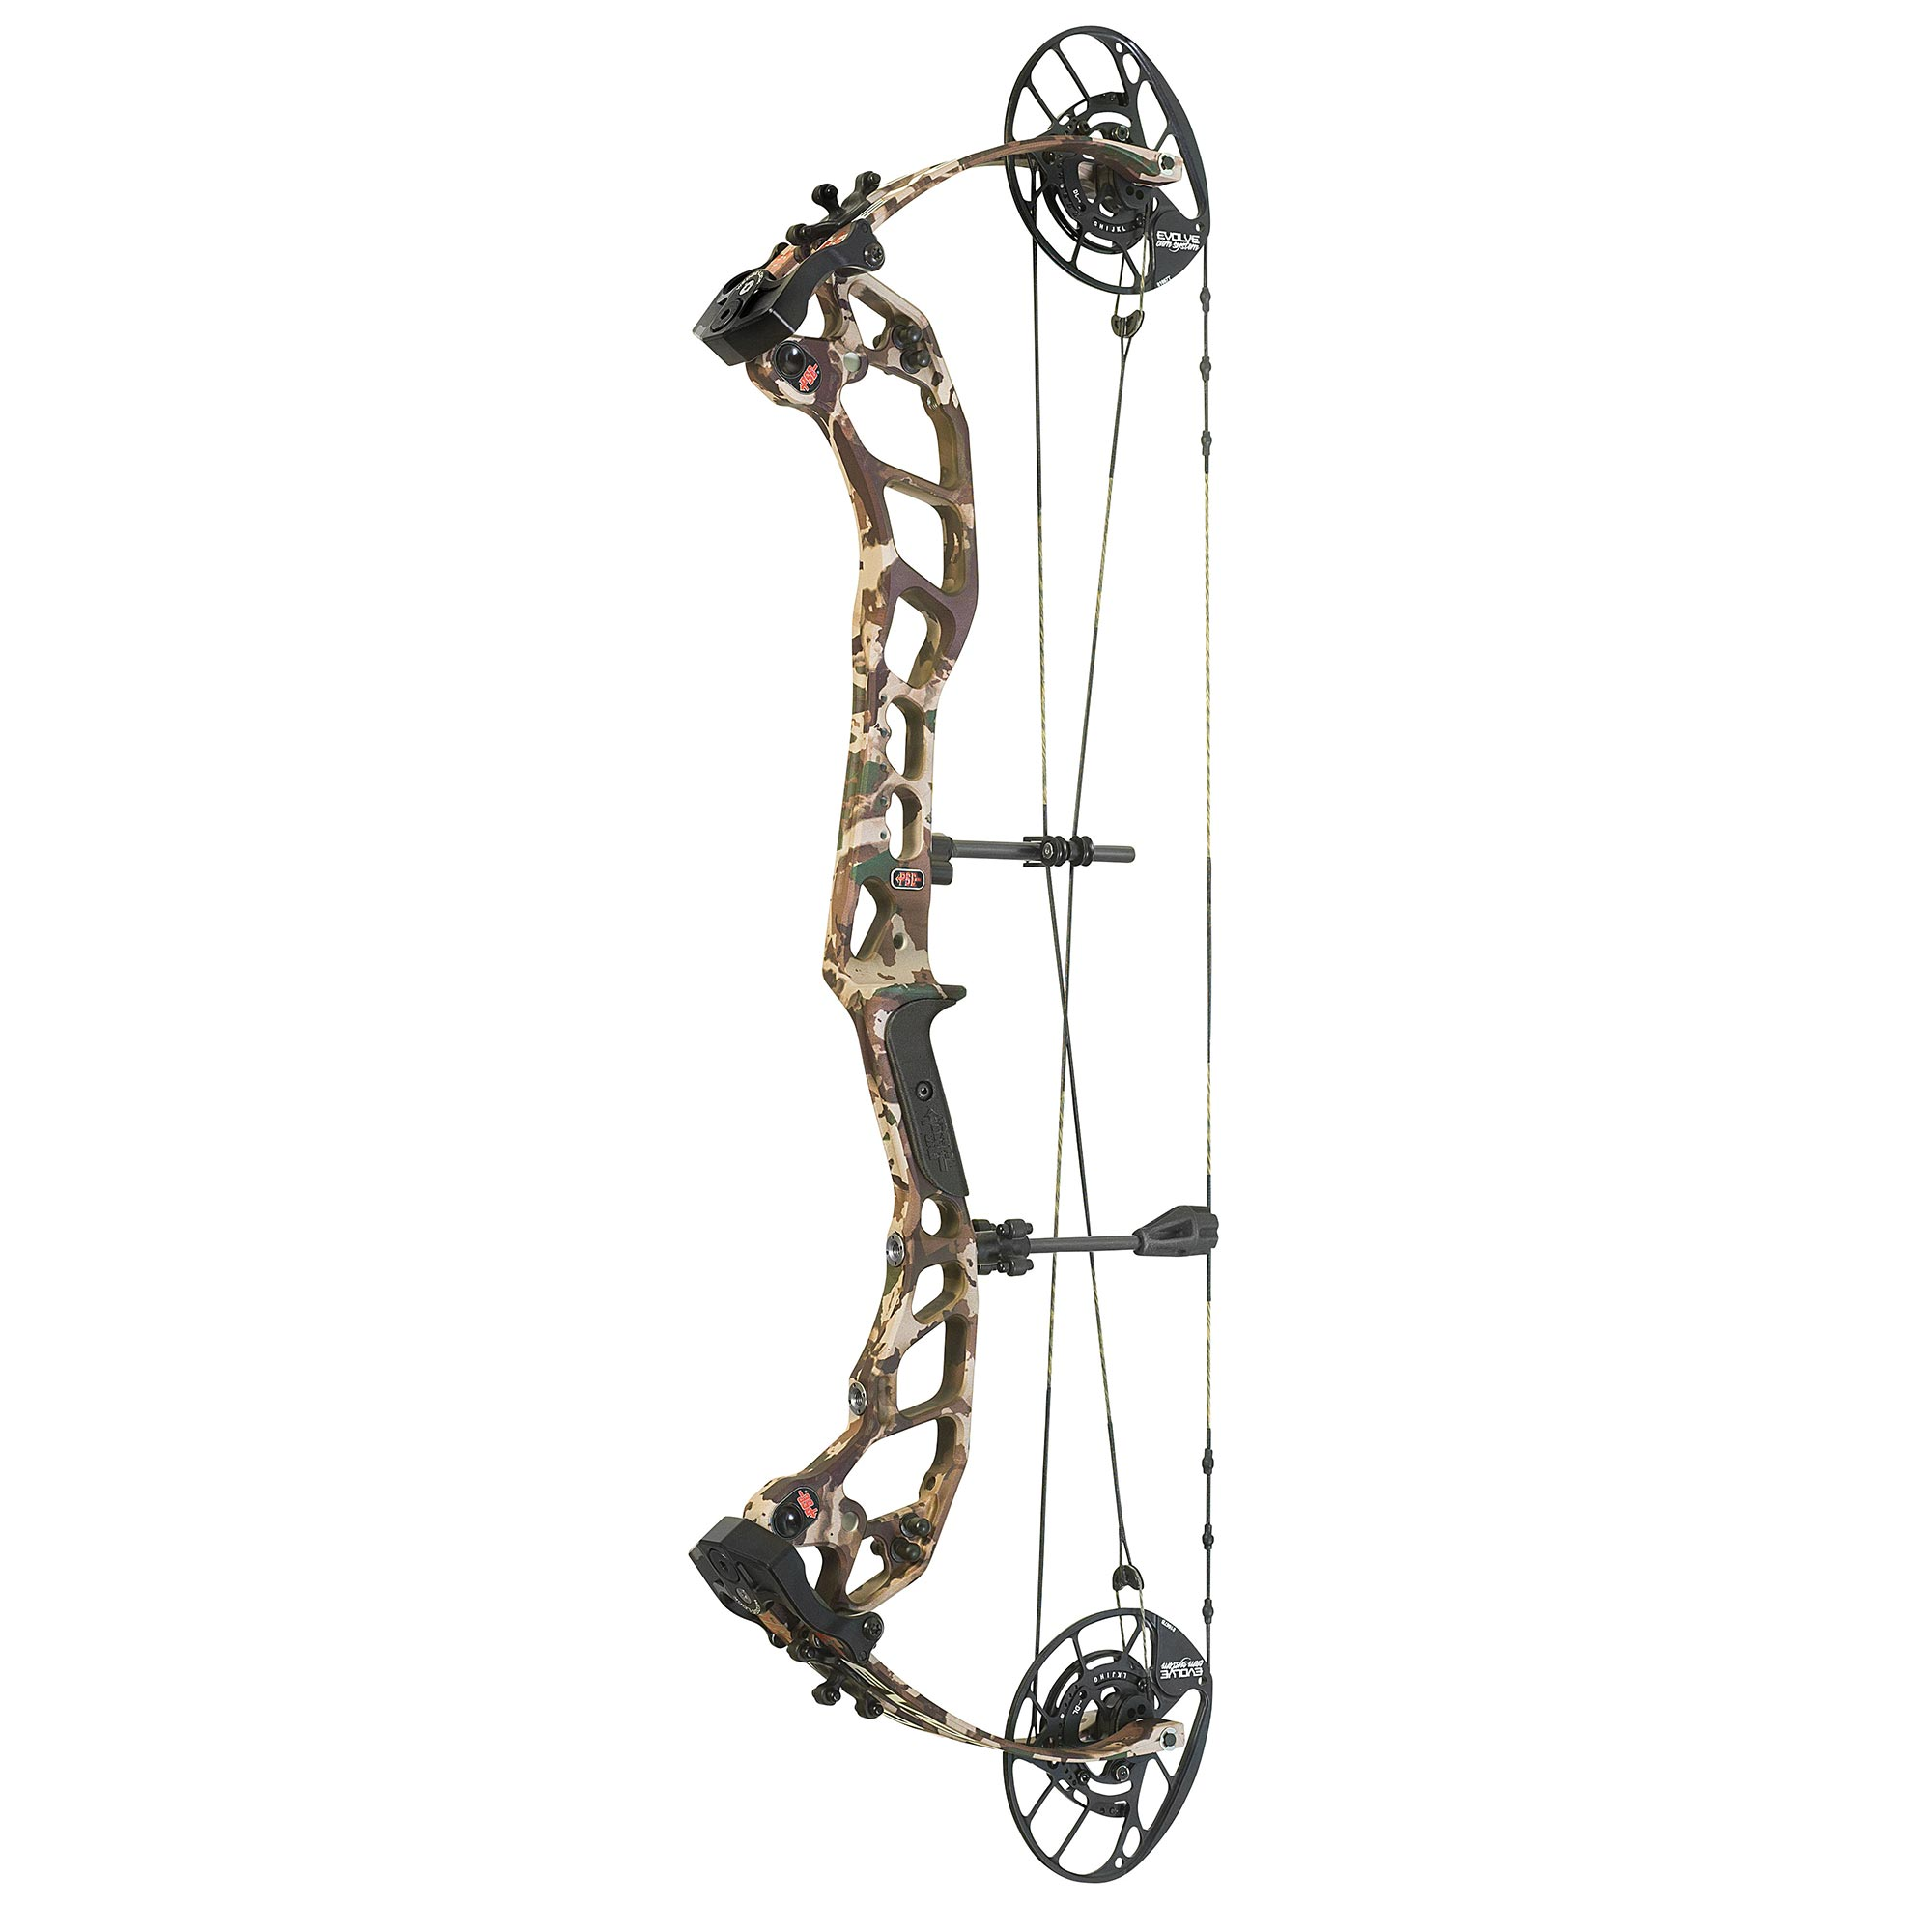 PSE Bandit NXT in RealTree Edge